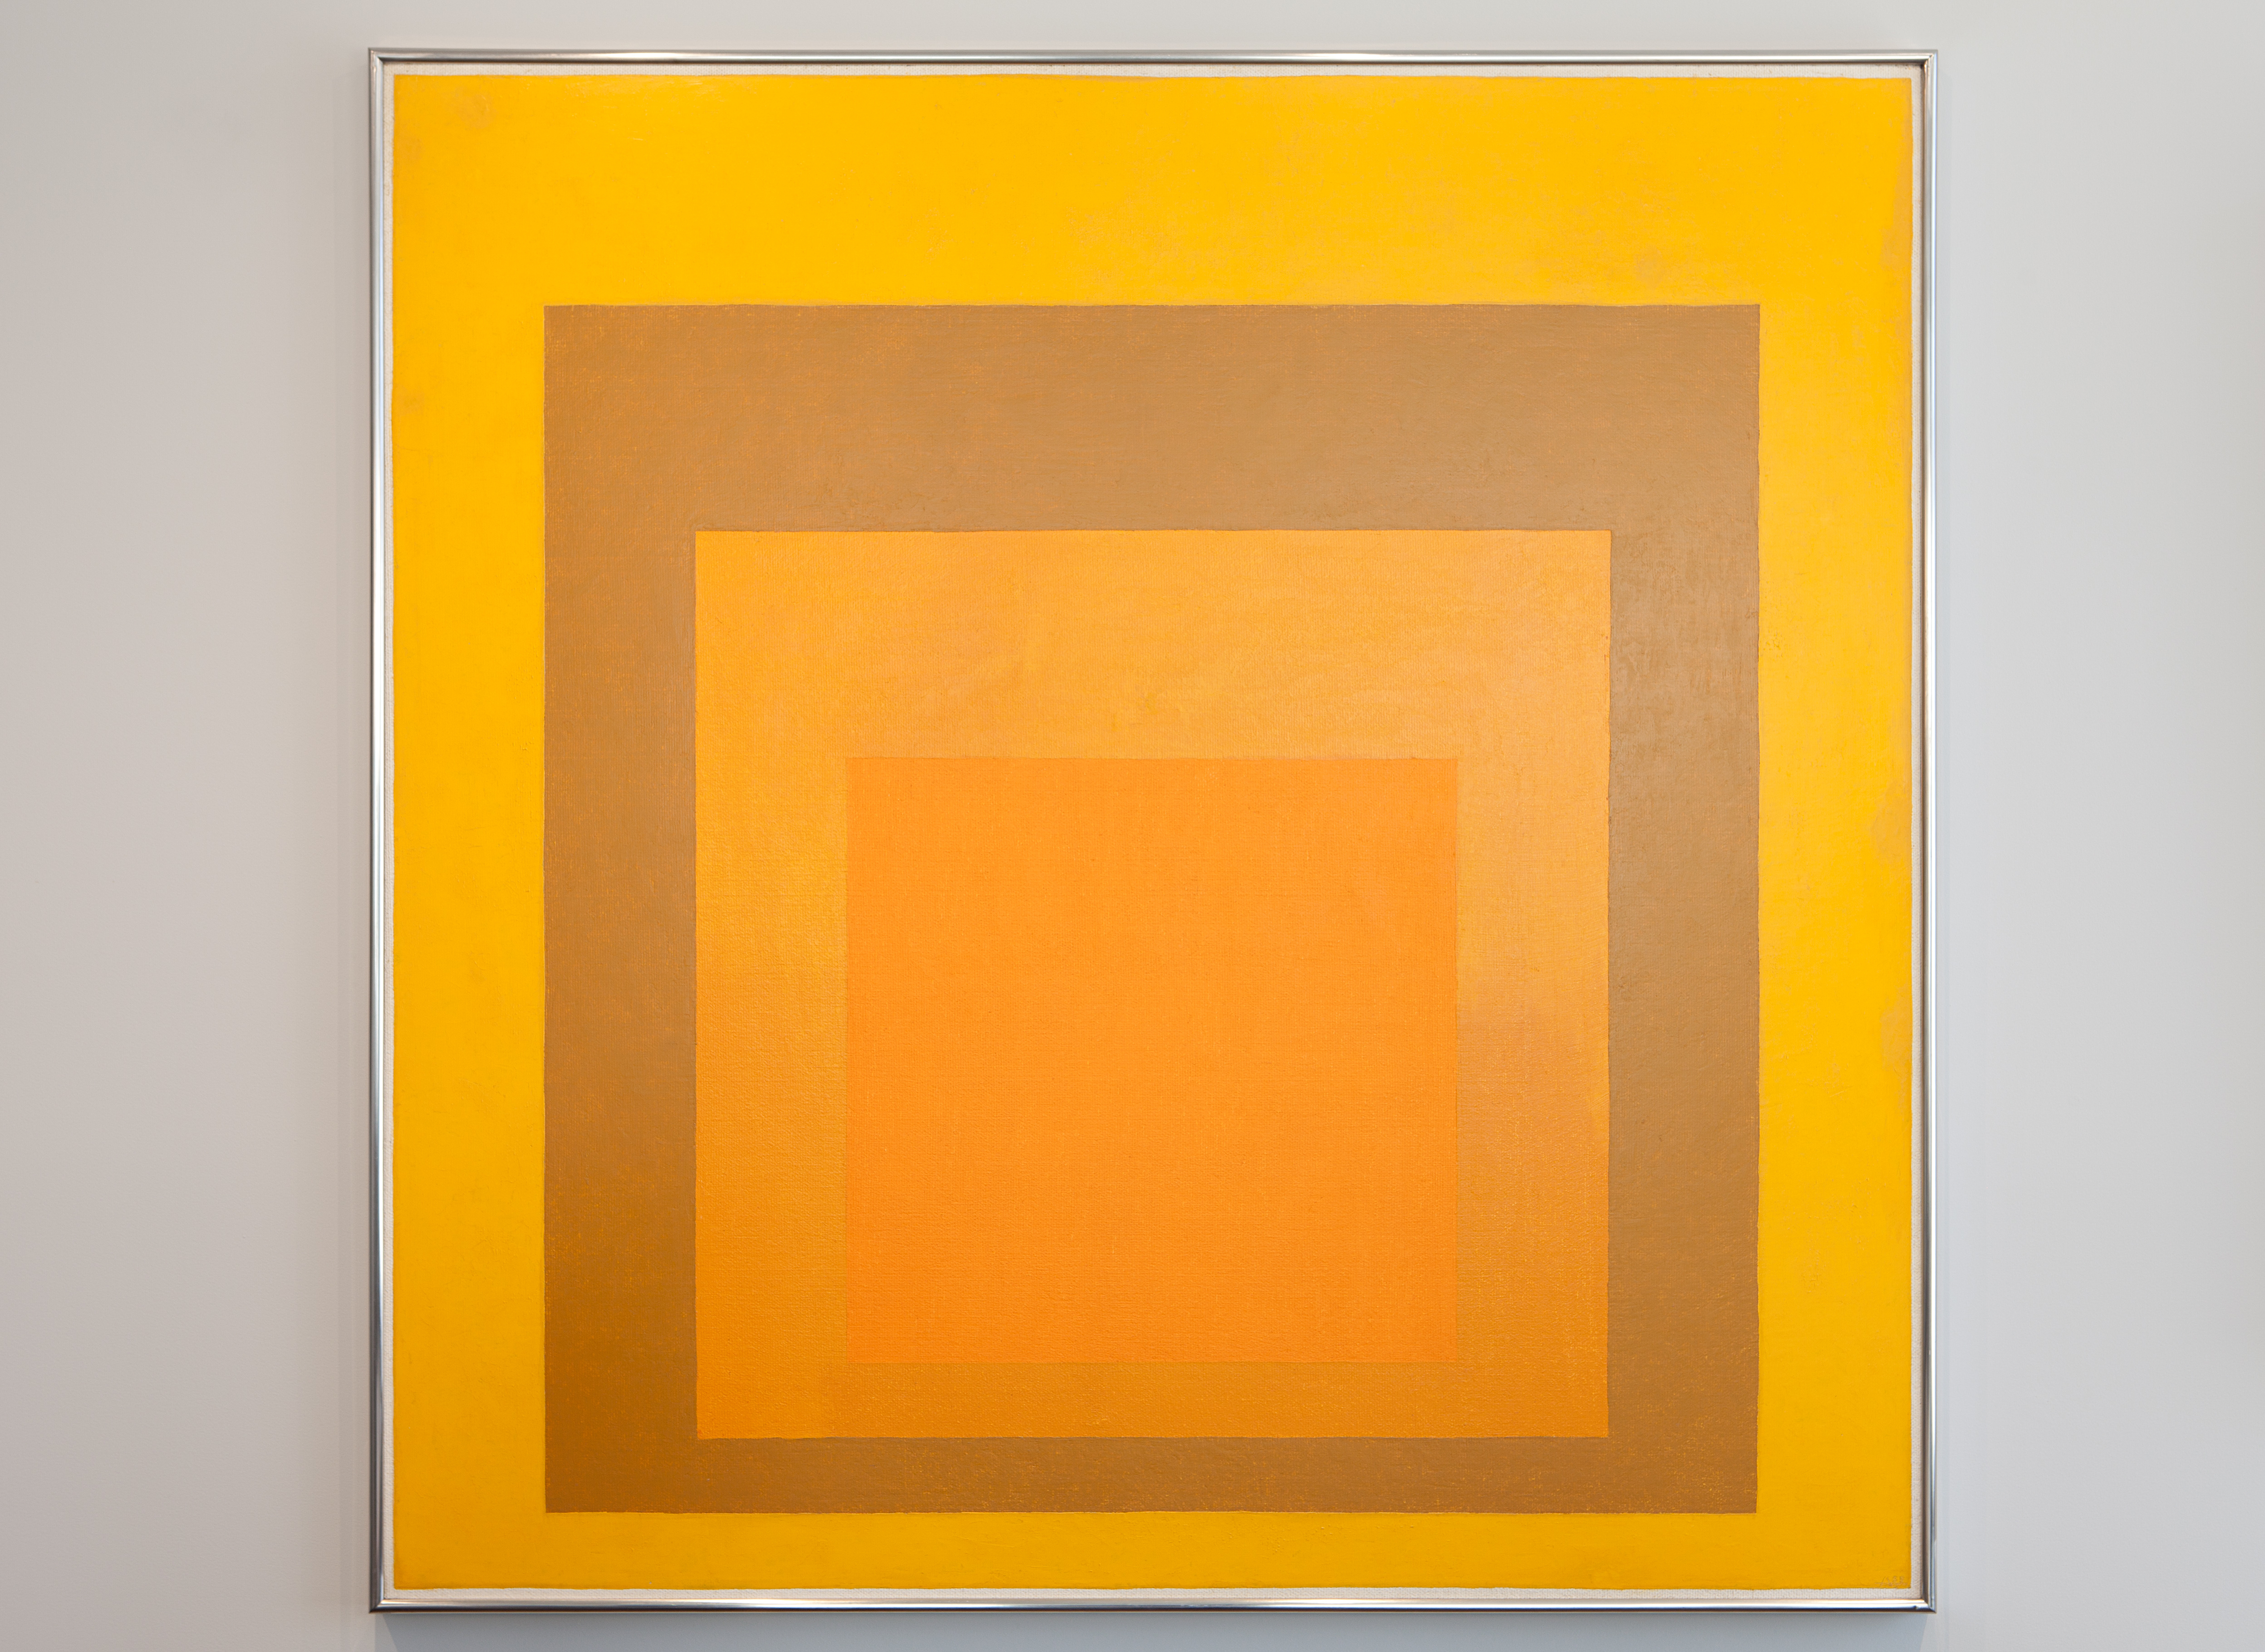 josef-albers-homage-to-the-square-amber-1959